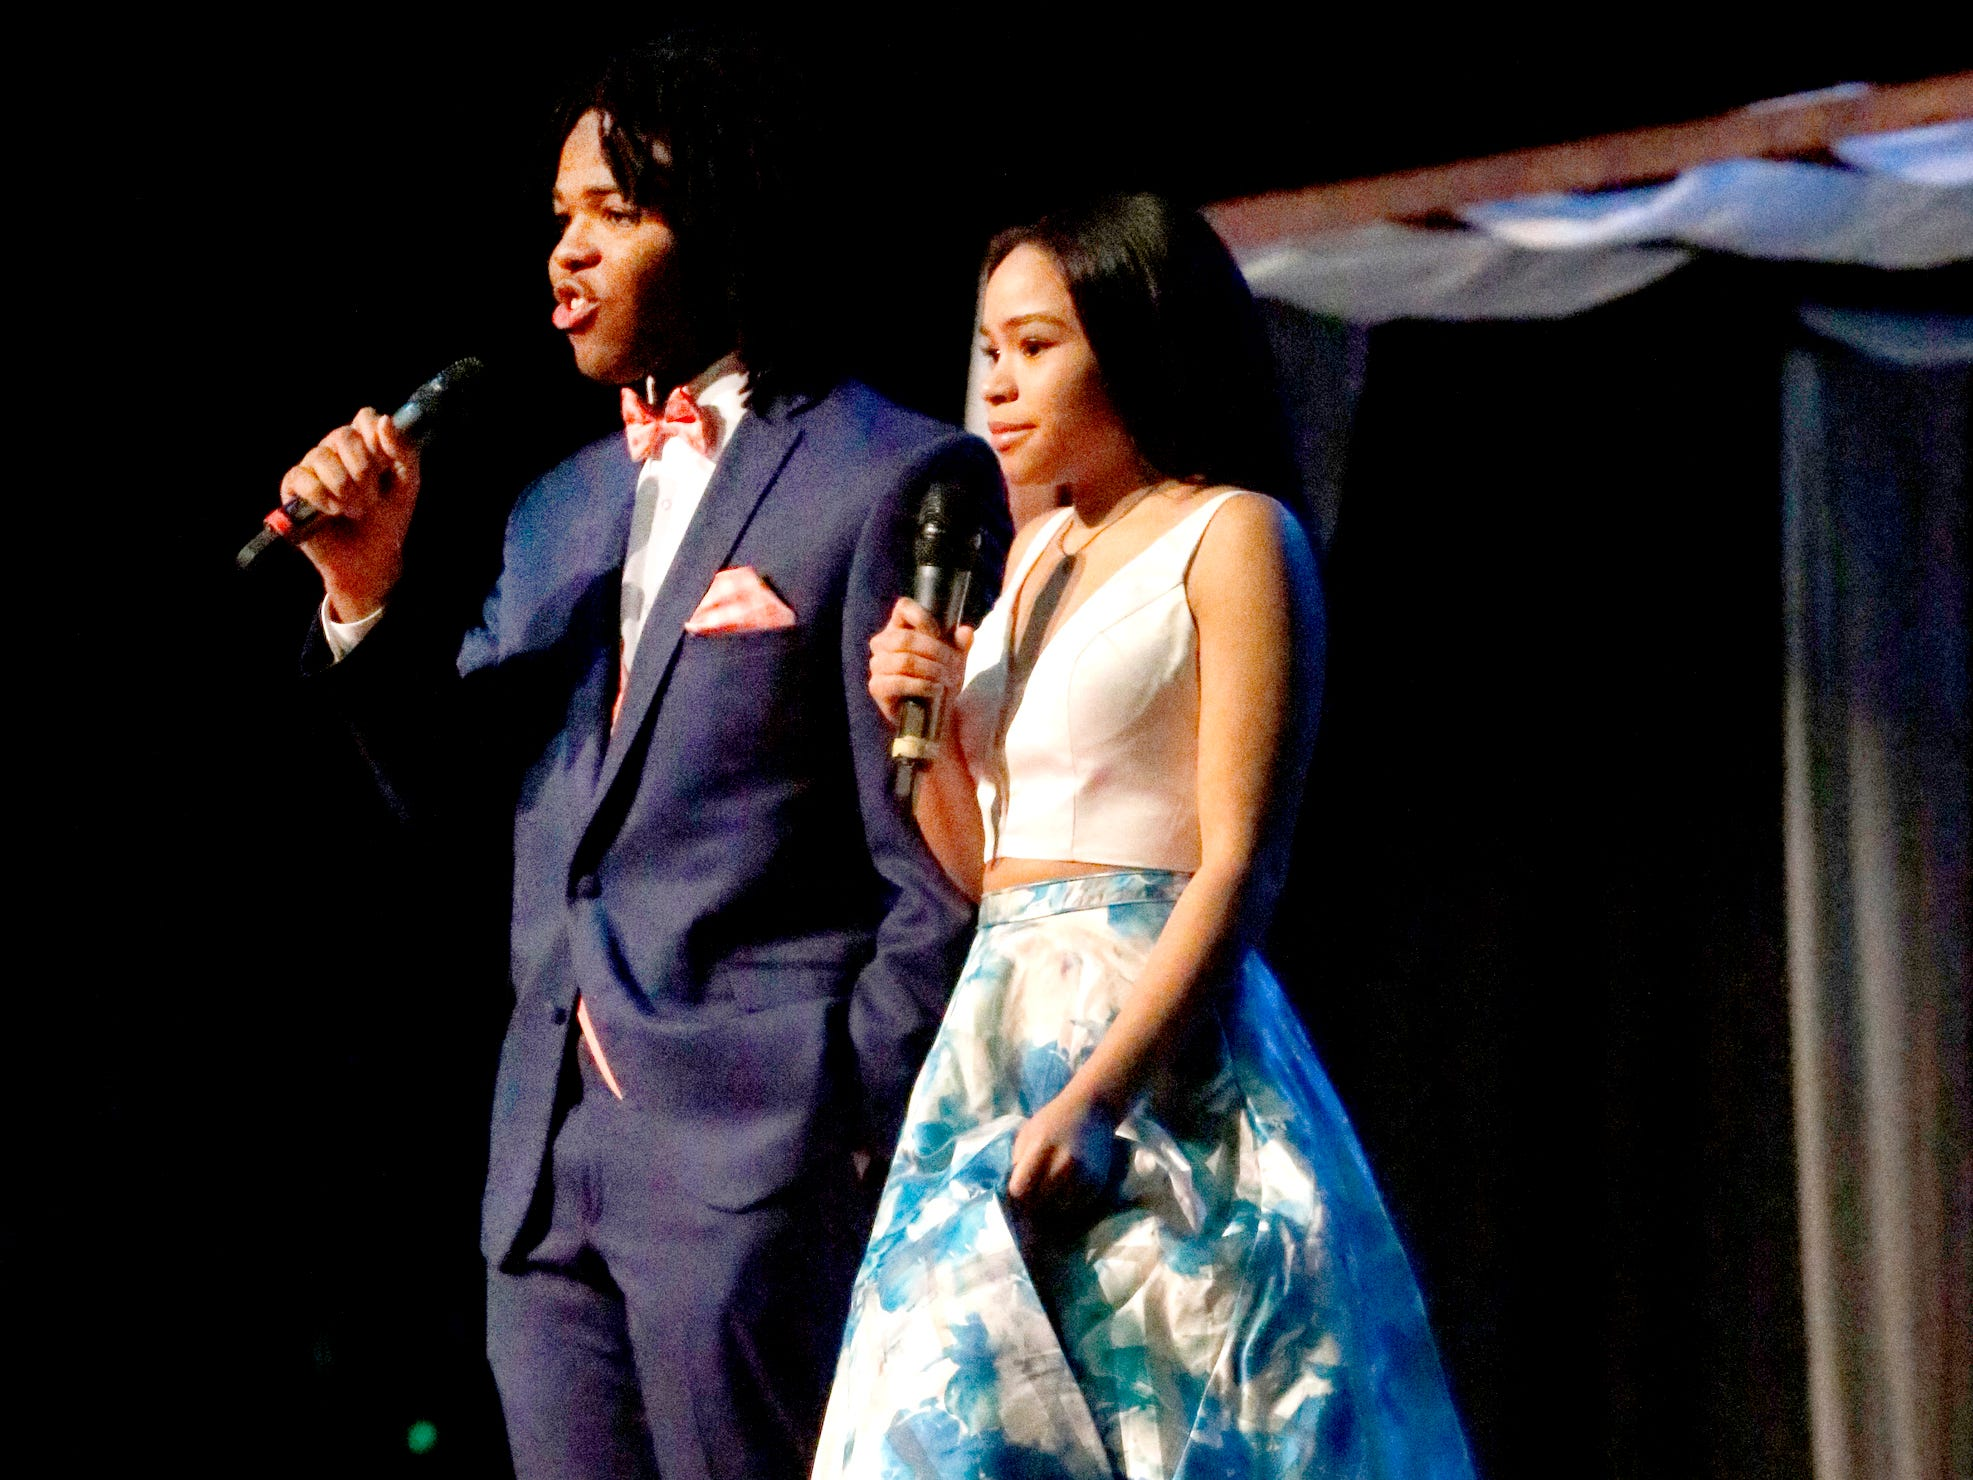 Malcom Bryant, left and Mya McDaniels, right show off the latest in prom fashions while they MC the Siegel Prom Fashion show on Thursday, Feb. 14, 2019.